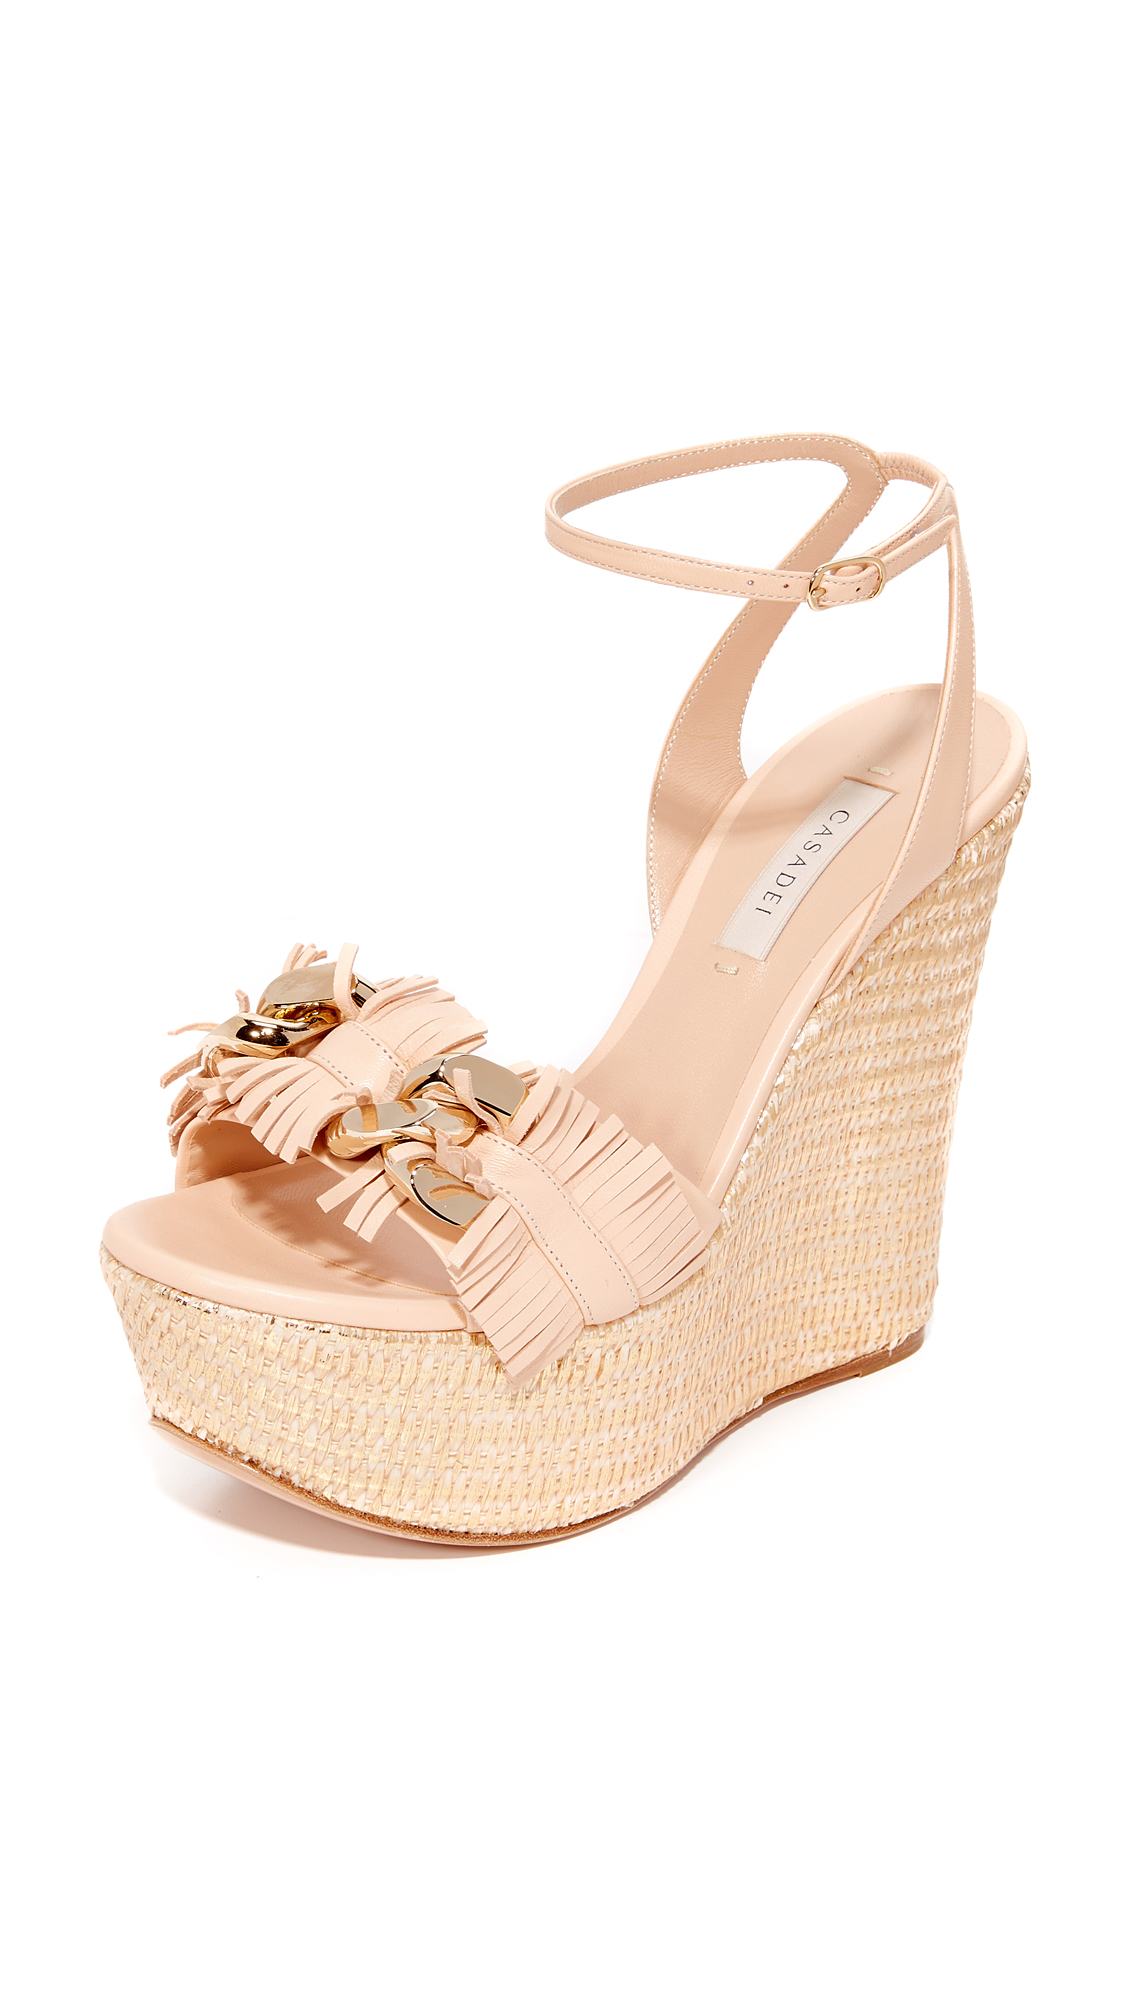 Casadei Jeweled Wedge Sandals - Nude/Gold at Shopbop